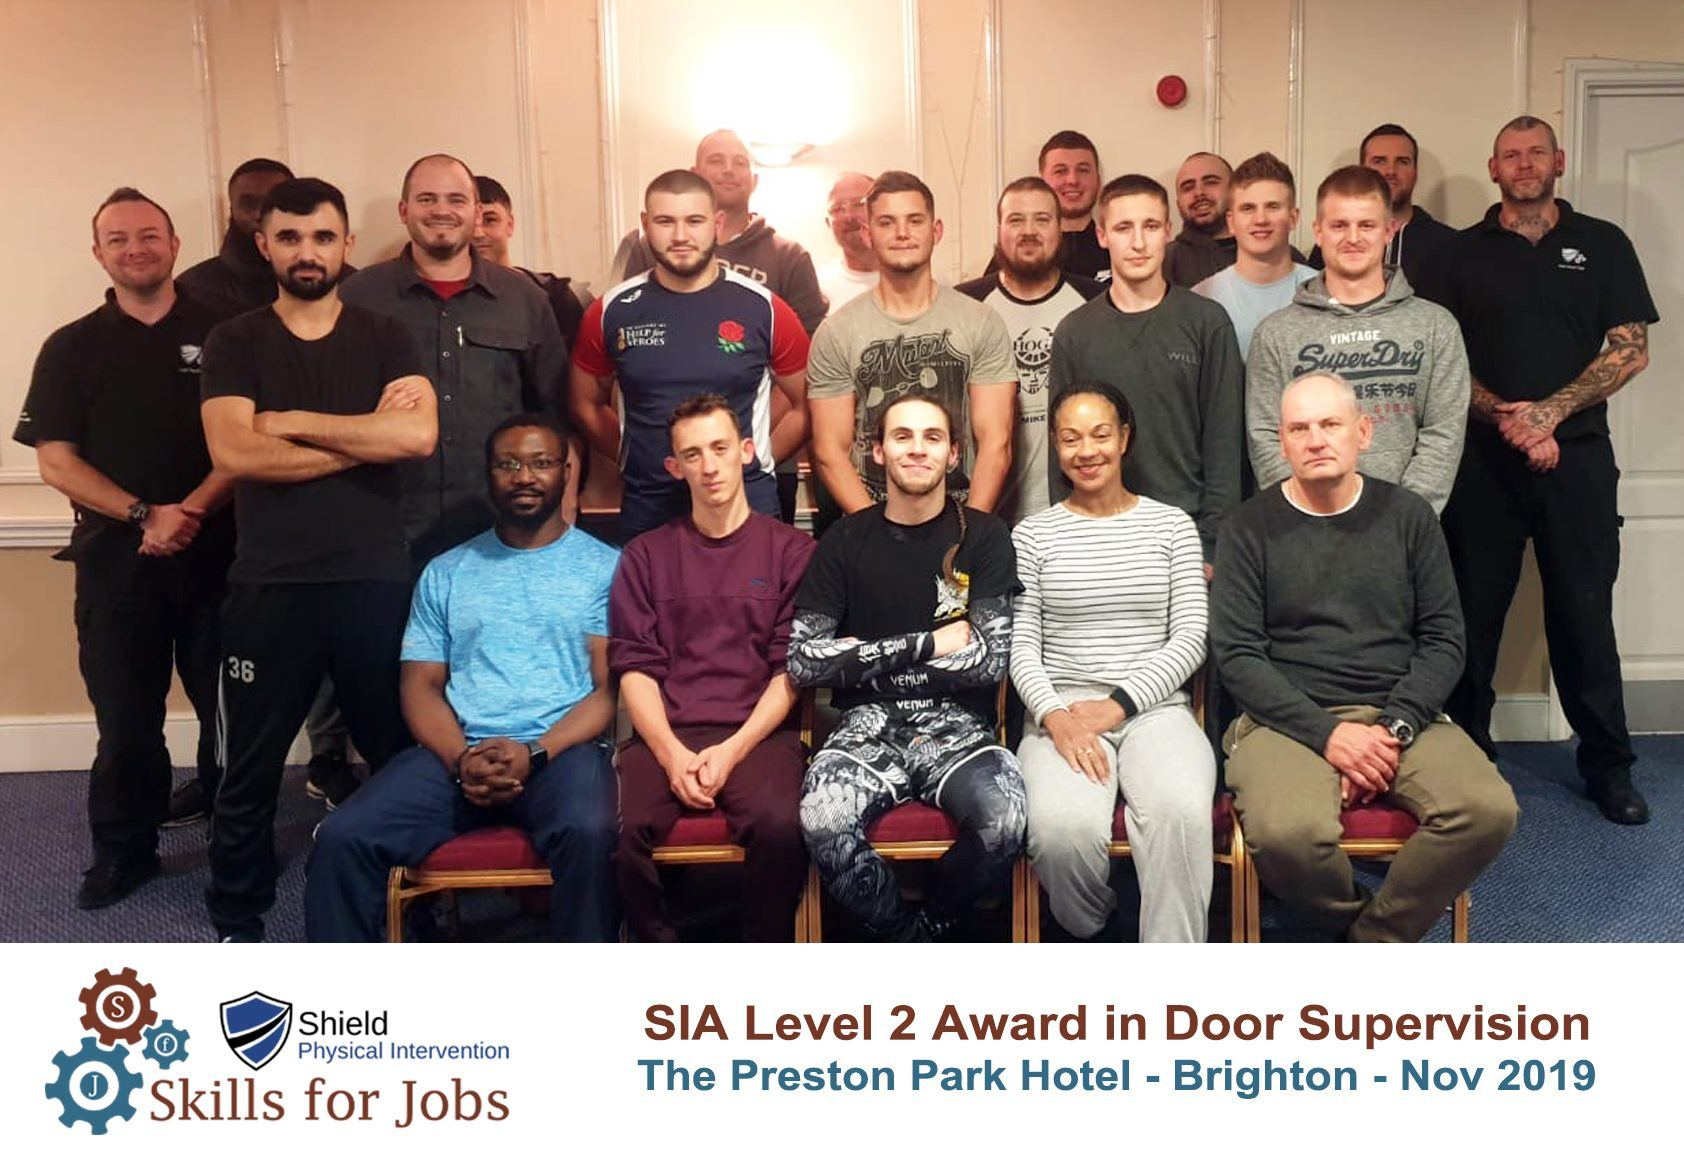 Brighton - SIA Level 2 Award in Door Supervision - November 2019